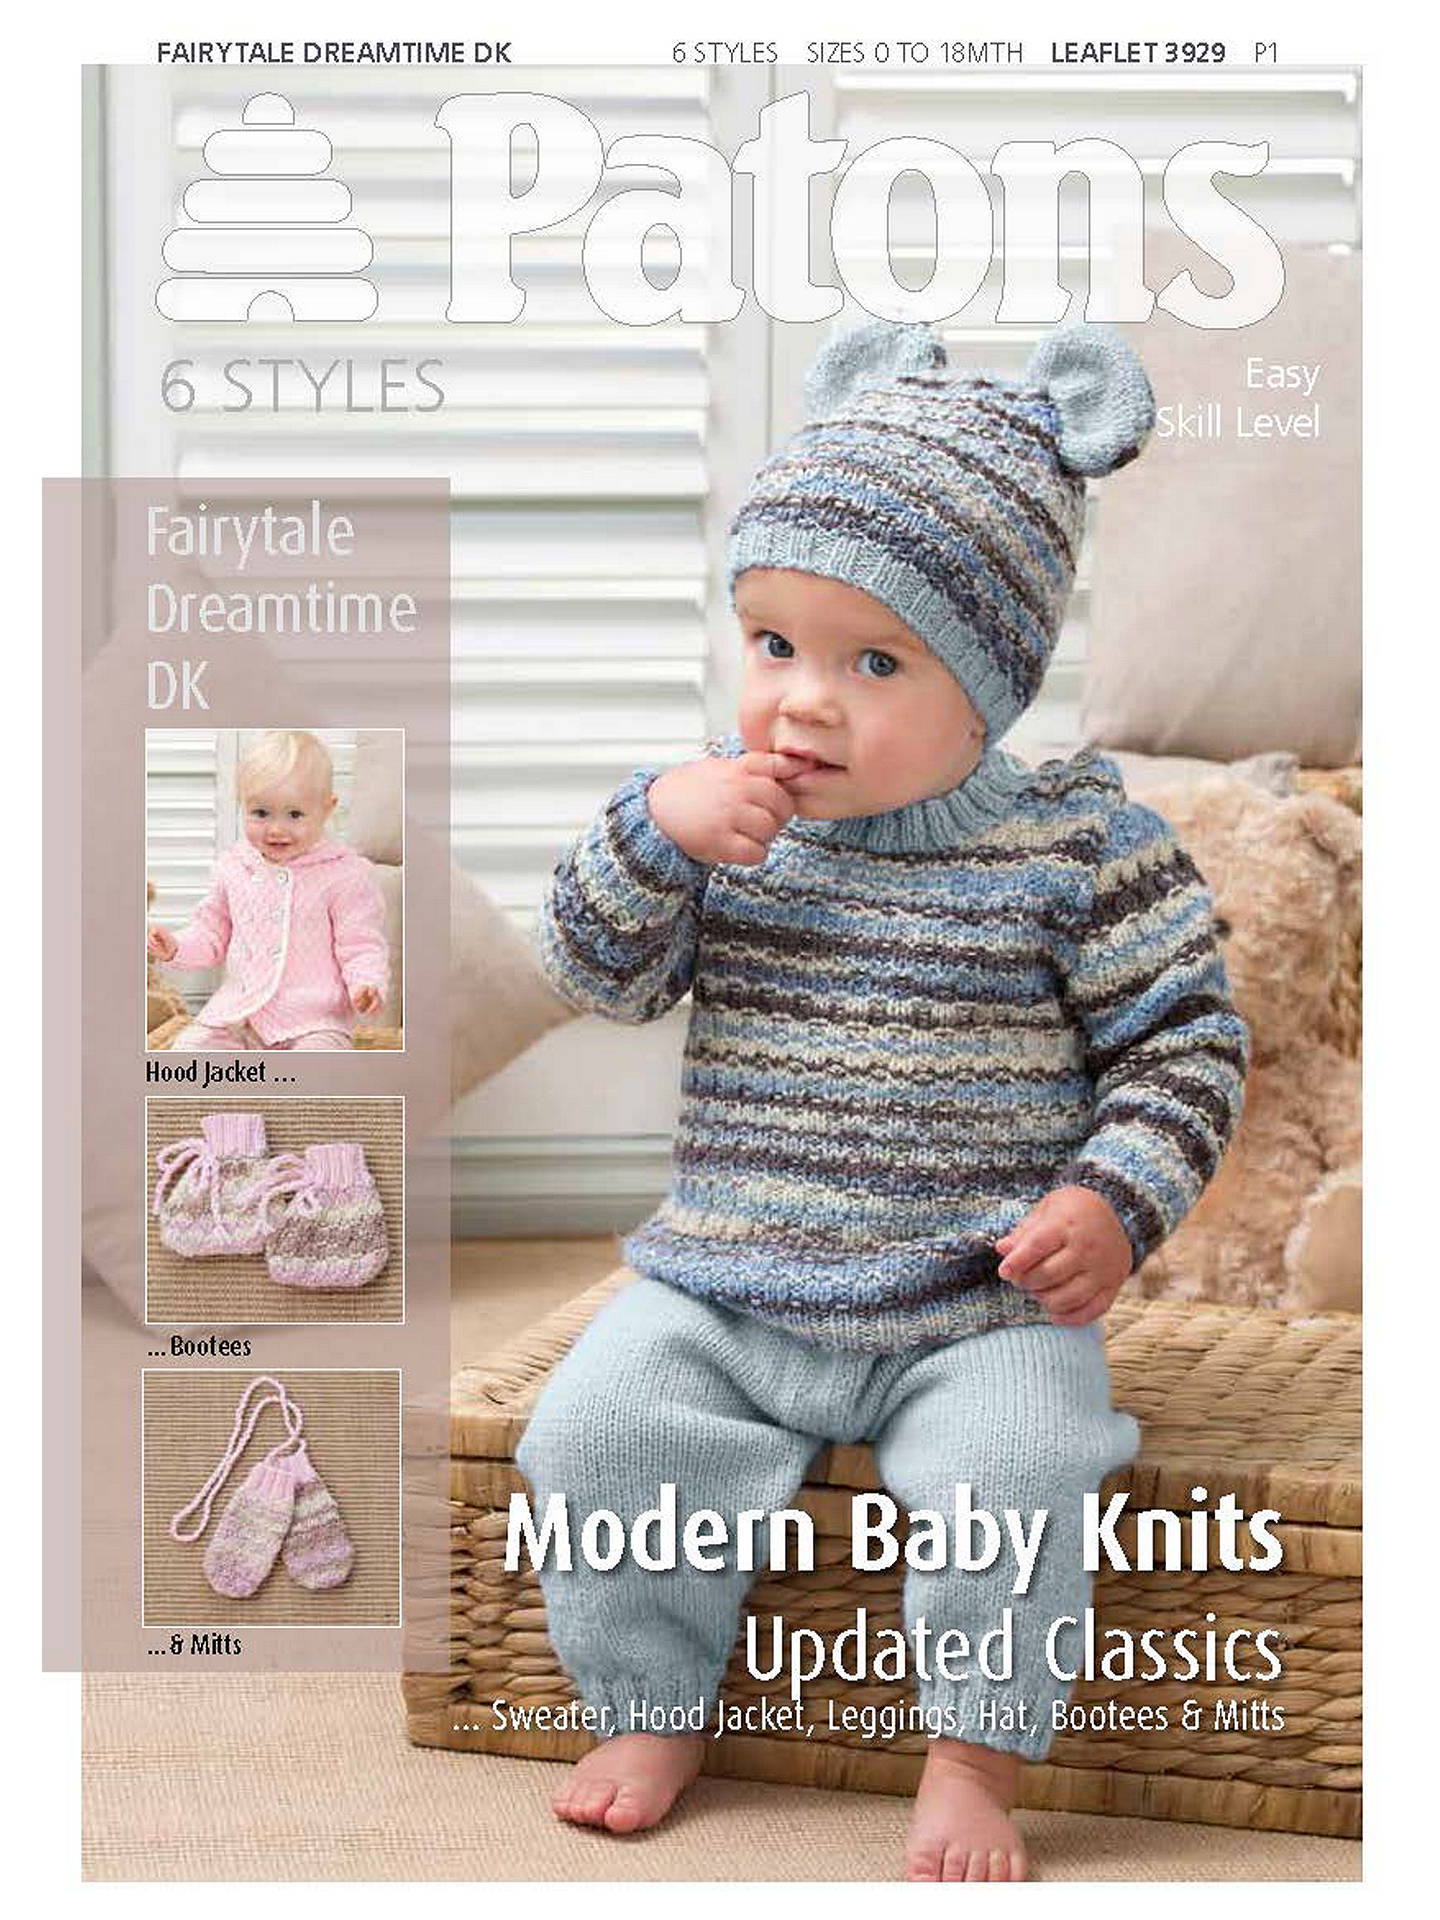 2c93a73d0bb4 Patons Yarn Modern Baby Knitting Pattern at John Lewis   Partners